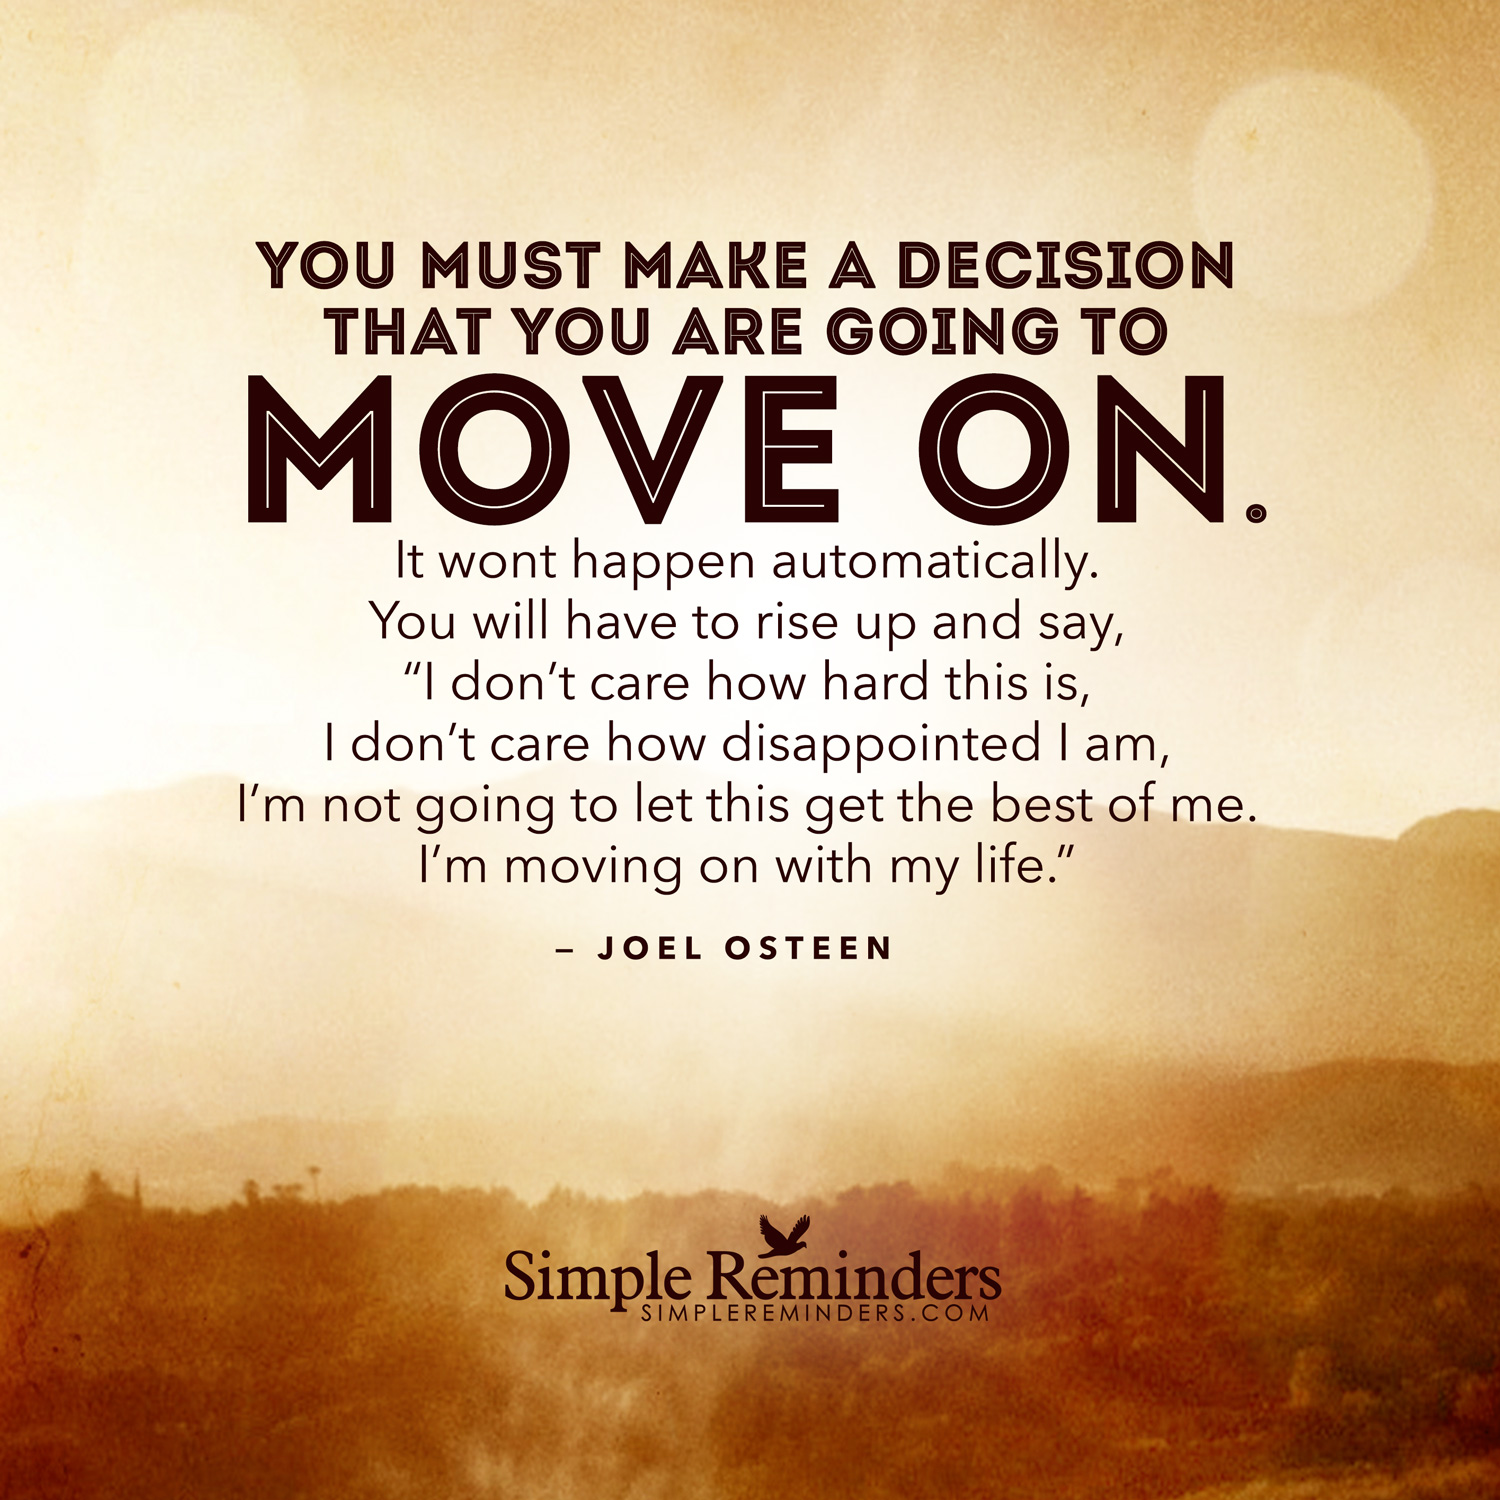 Quotes About Moving On In Life What Quote Do You Need To Hear Right Now  Playbuzz